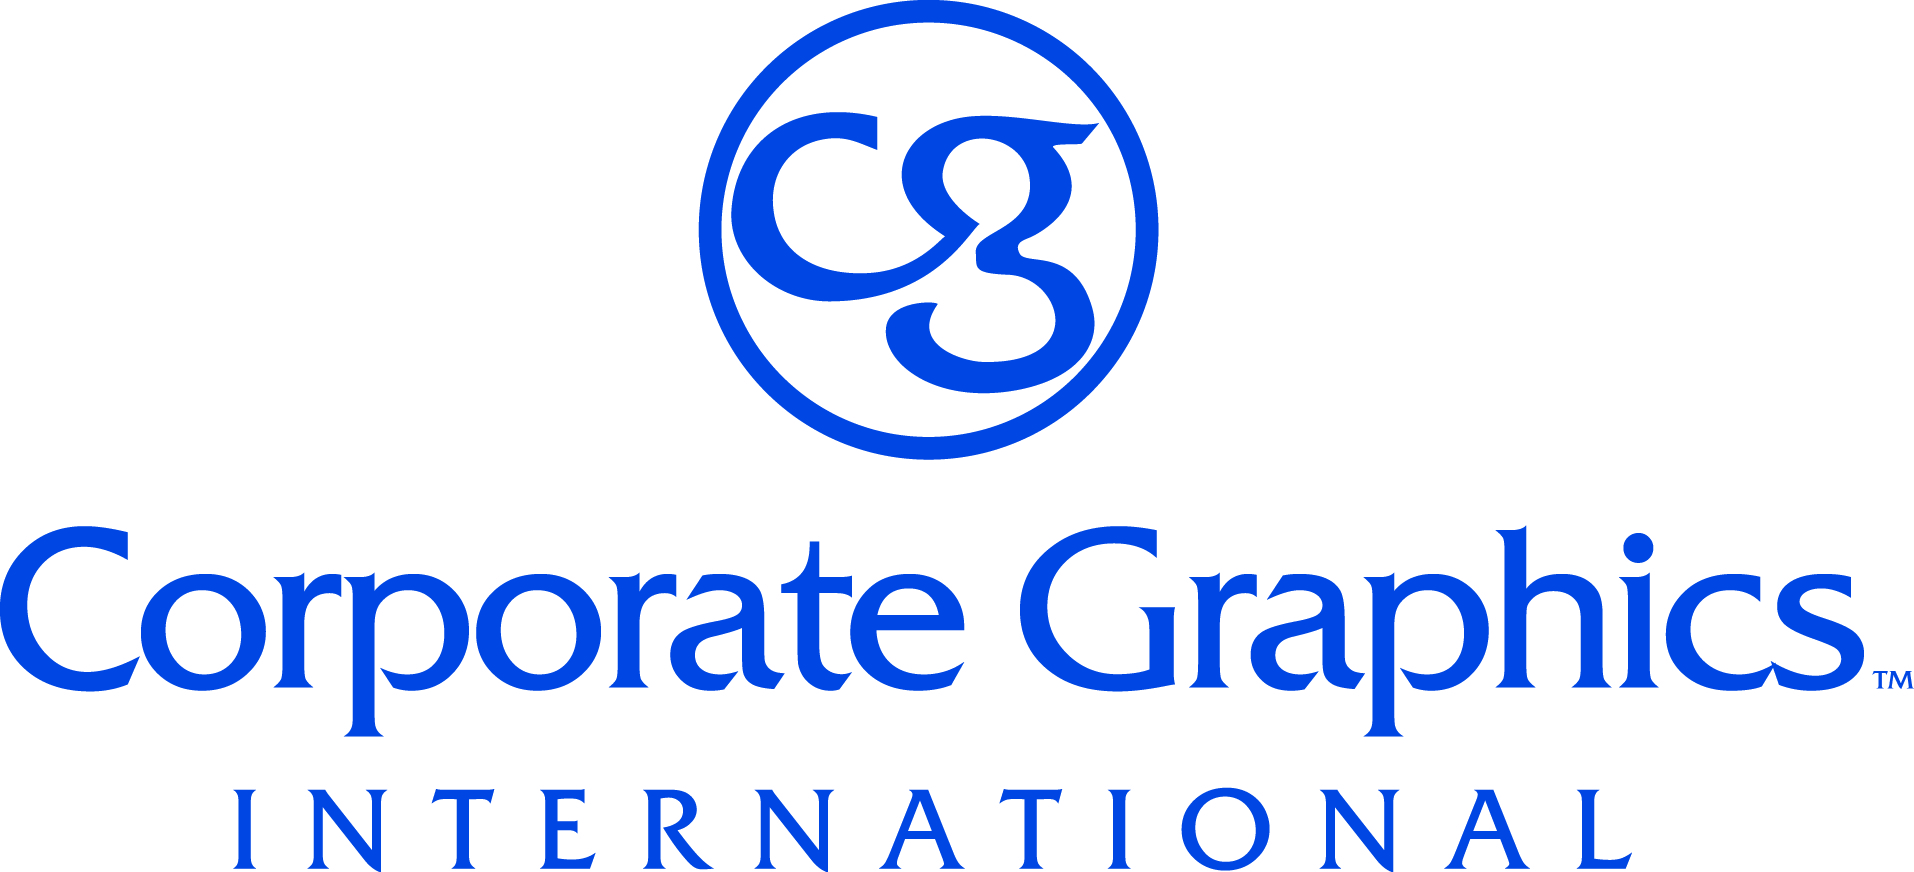 Corporate Graphics International